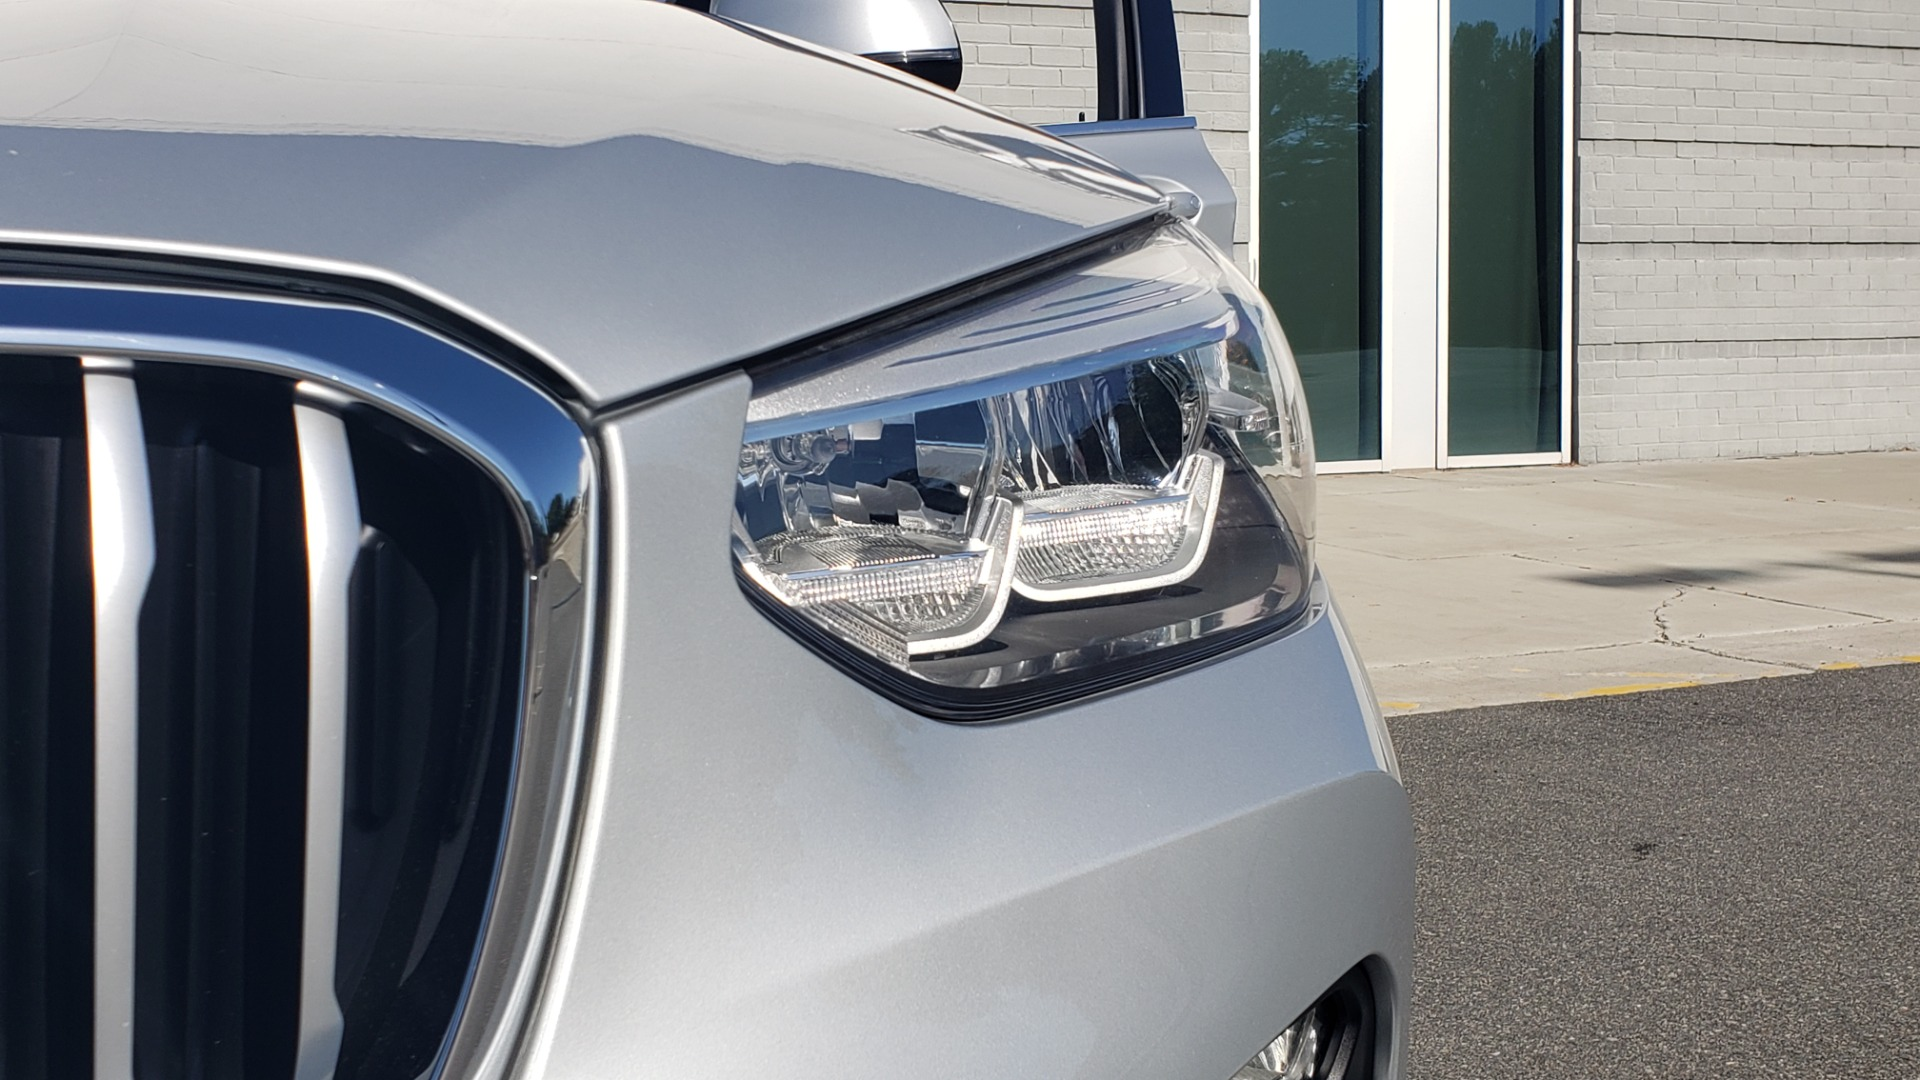 Used 2019 BMW X3 XDRIVE30I / DRVR ASST / PANO-ROOF / HTD STS / REARVIEW for sale $41,995 at Formula Imports in Charlotte NC 28227 26